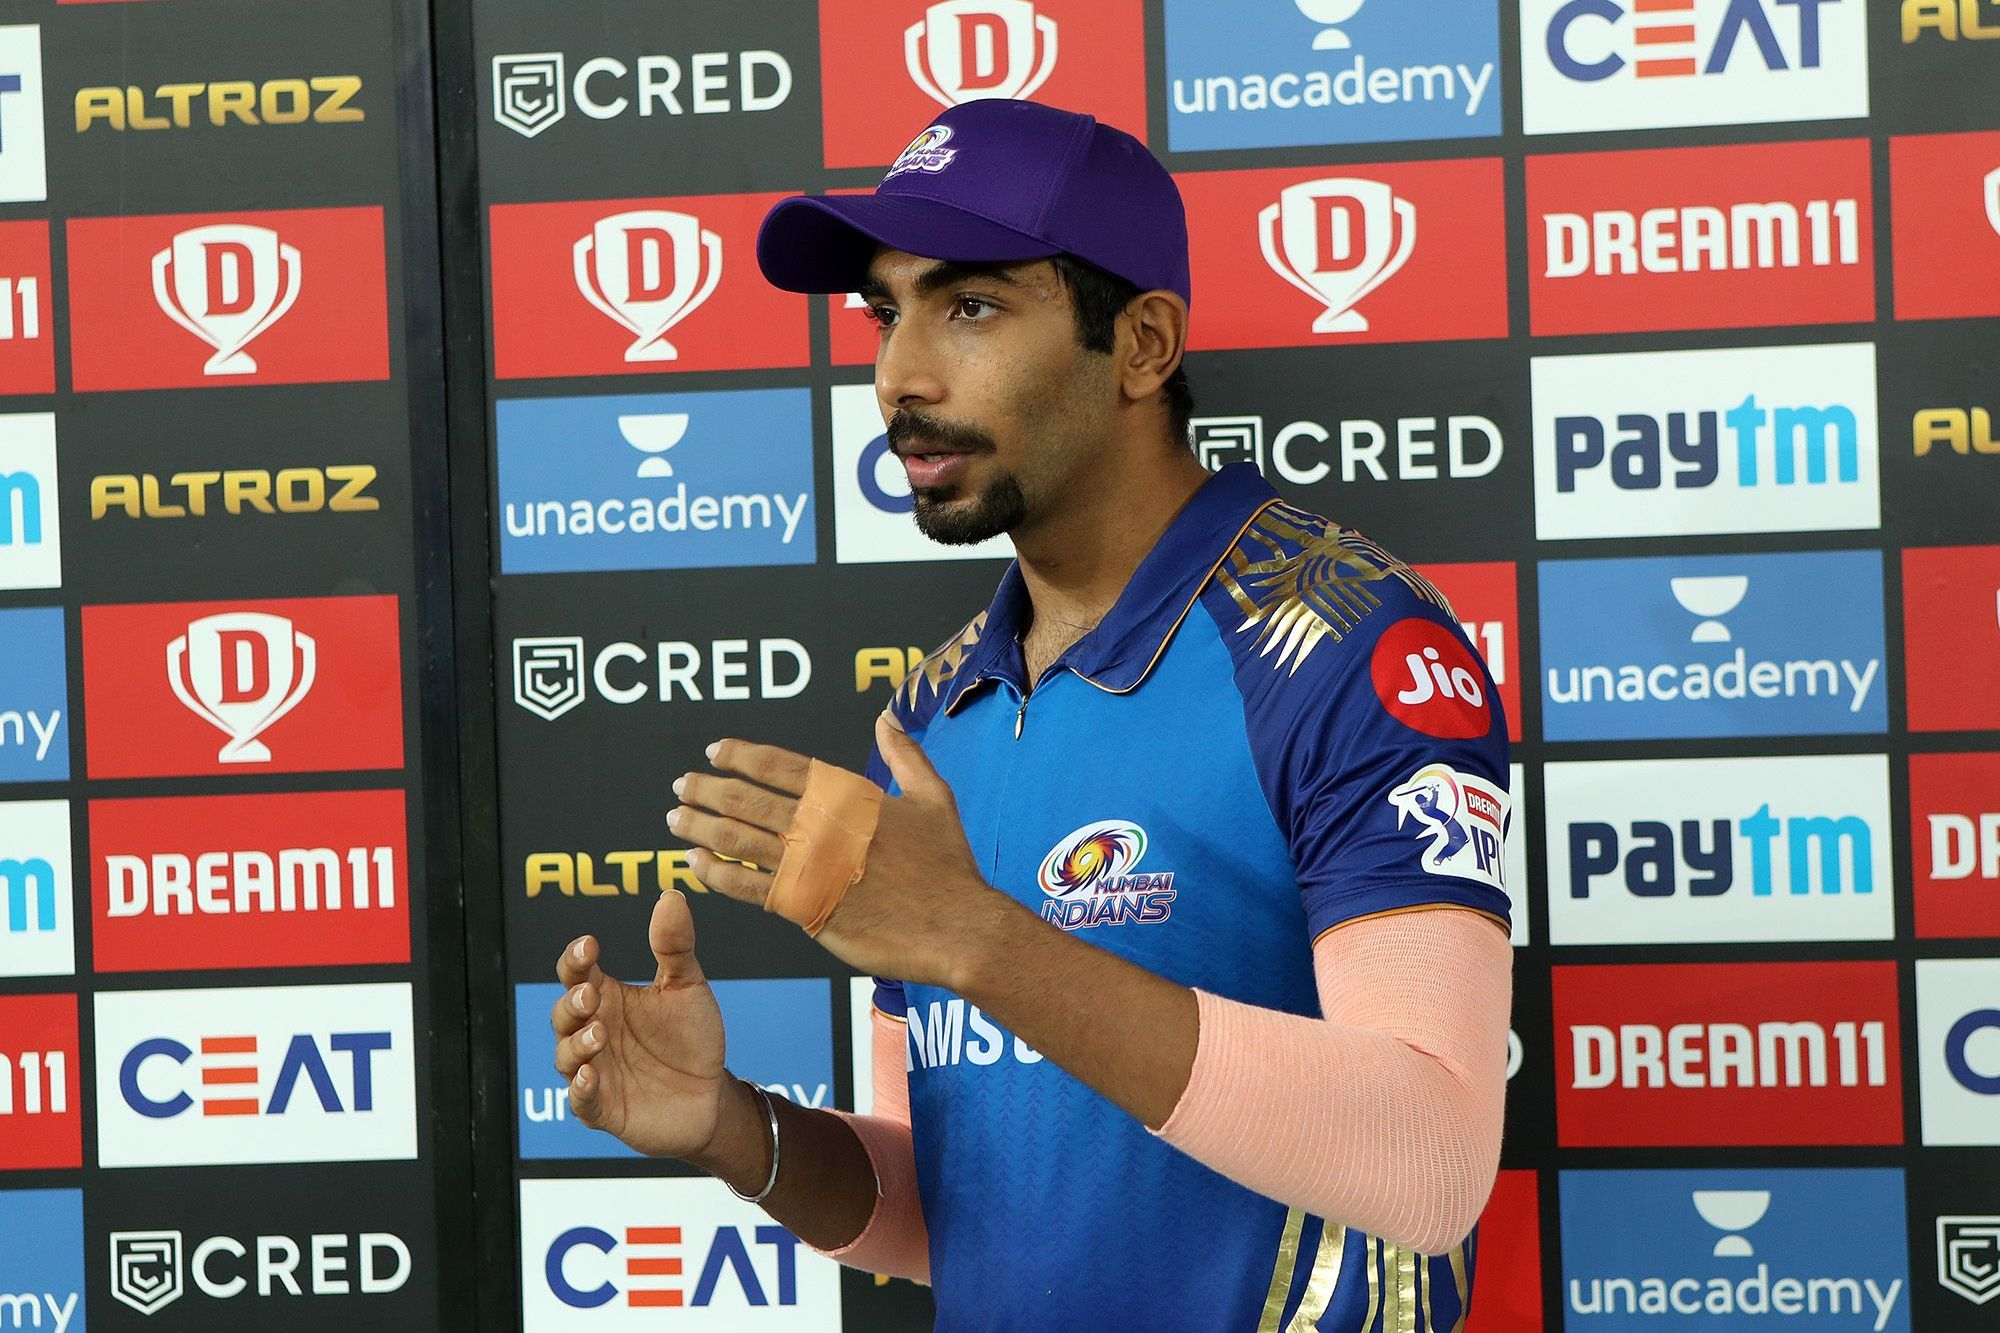 Jasprit Bumrah now has the purple cap for most wickets in IPL 2020 | BCCI/IPL